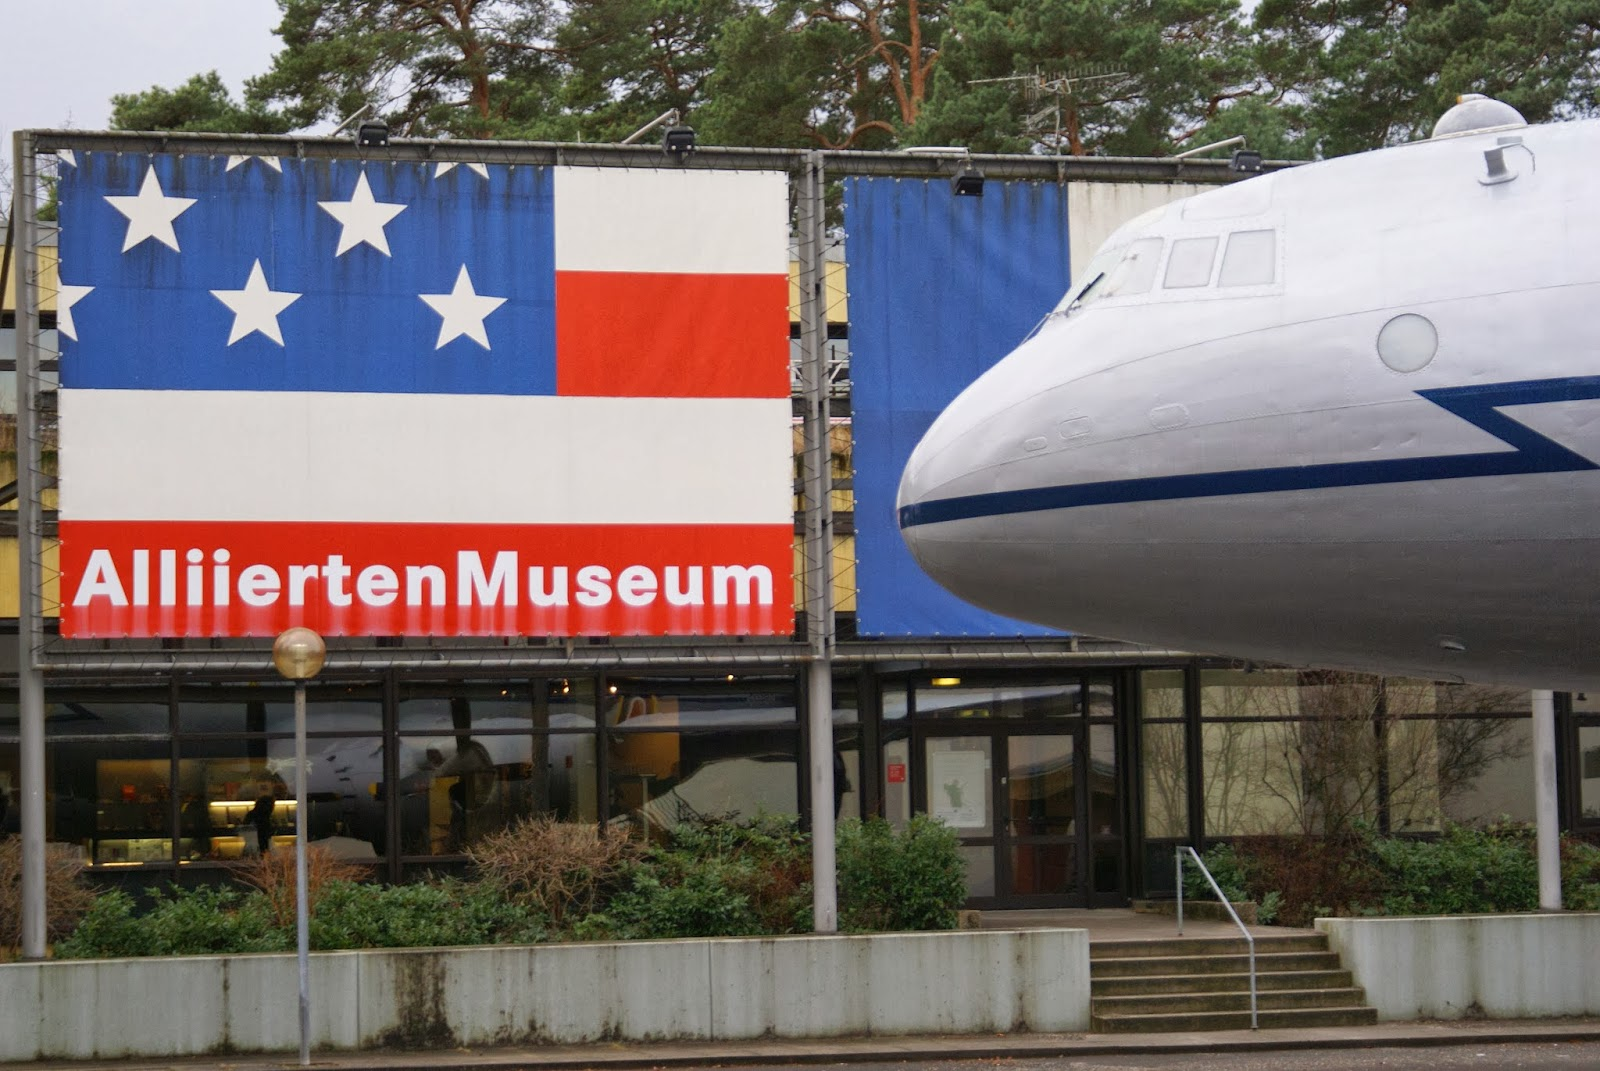 Allied Museum in Germany